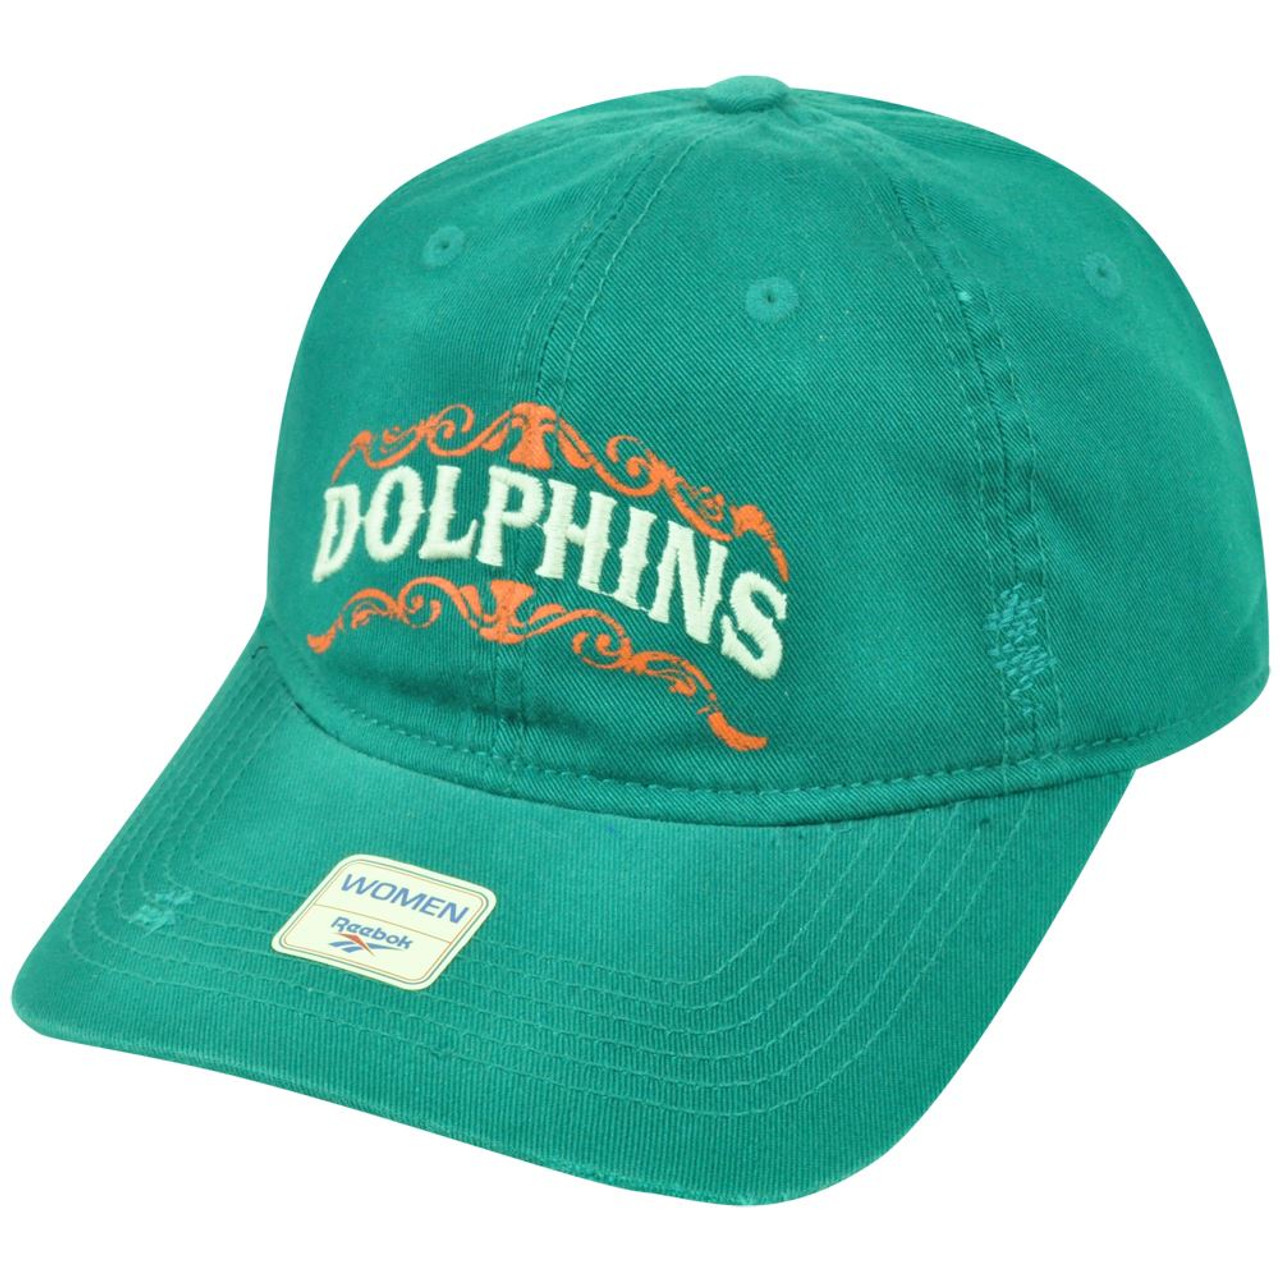 2293c539f50 NFL Miami Dolphins Reebok Football Women s Distressed Clip Buckle Cap Hat  DH1680 - Sinbad Sports Store